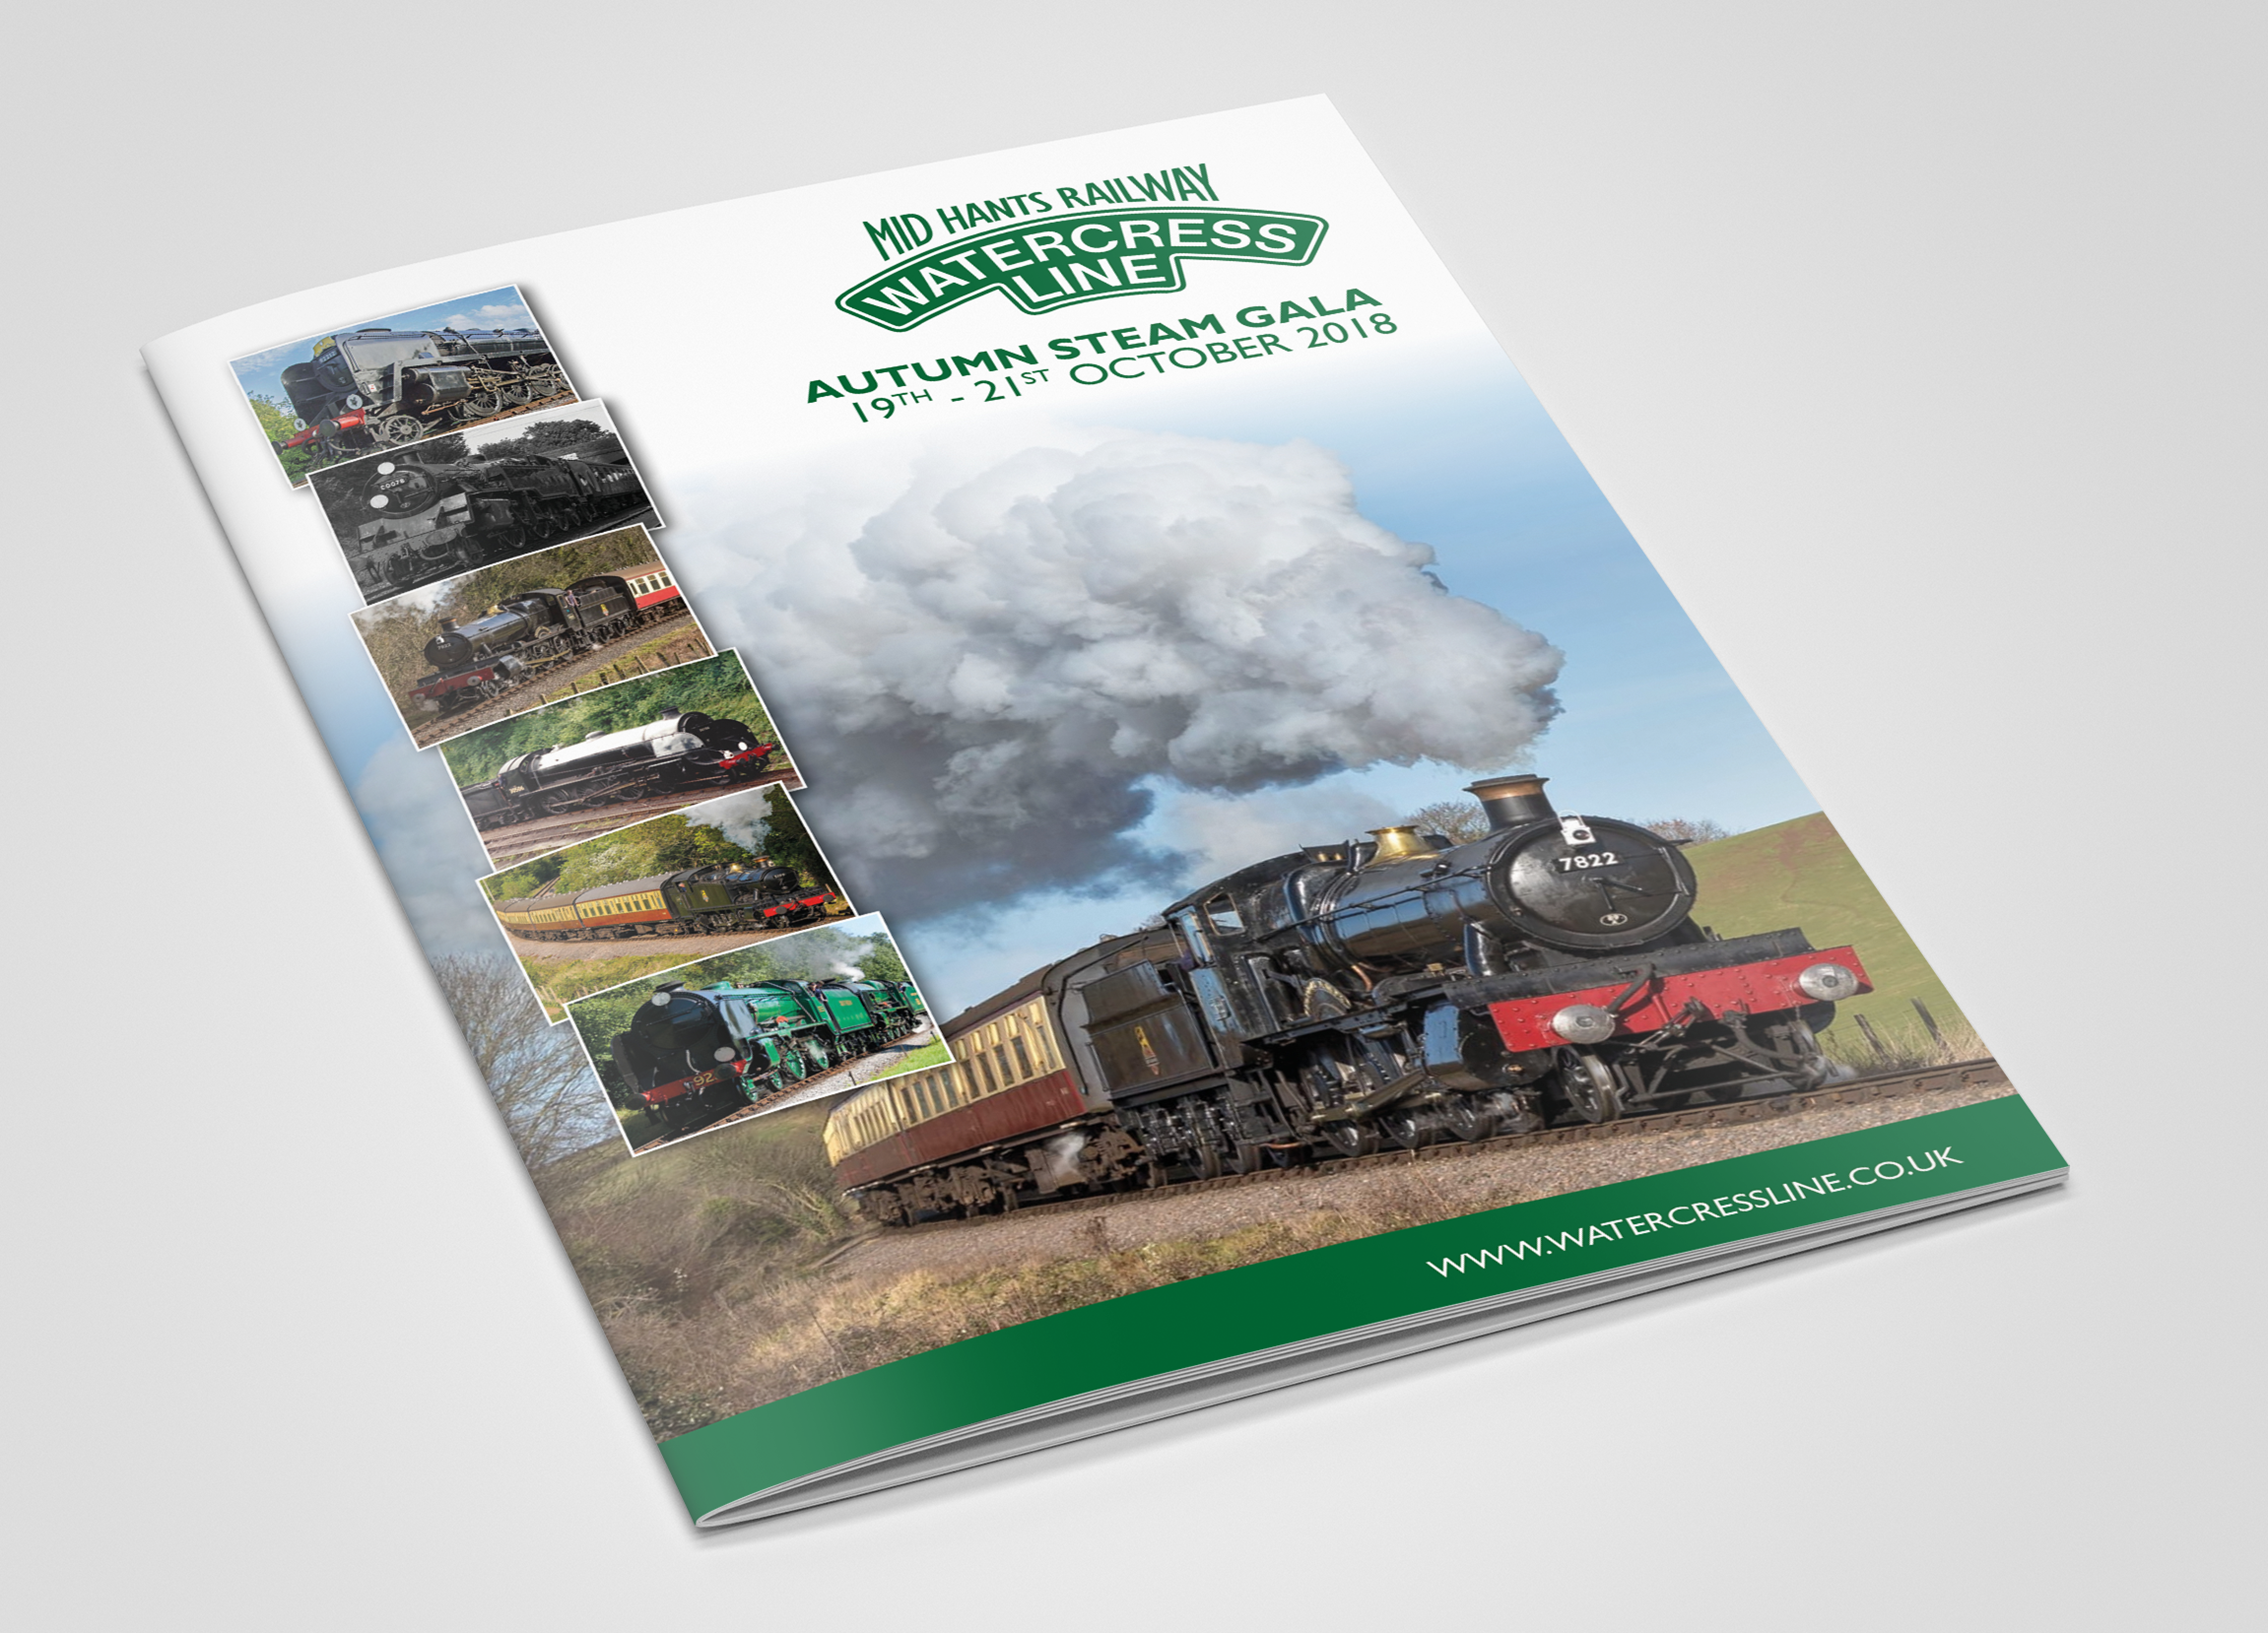 The Watercress Line Steam Gala Brochure 2018